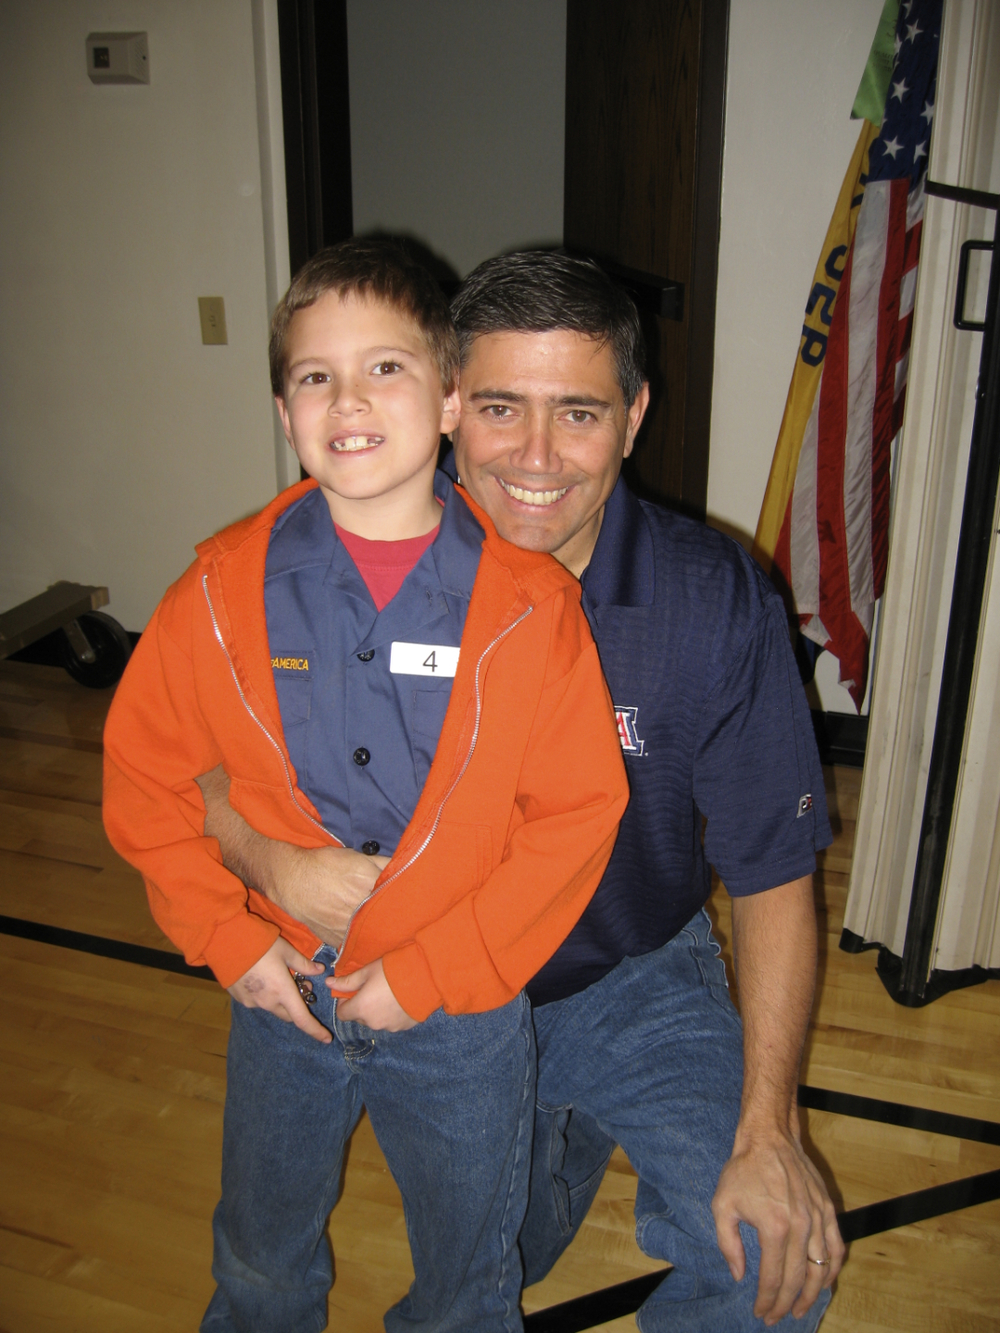 2008. Koleden and Luis at a Scouting Pinewood Derby event.